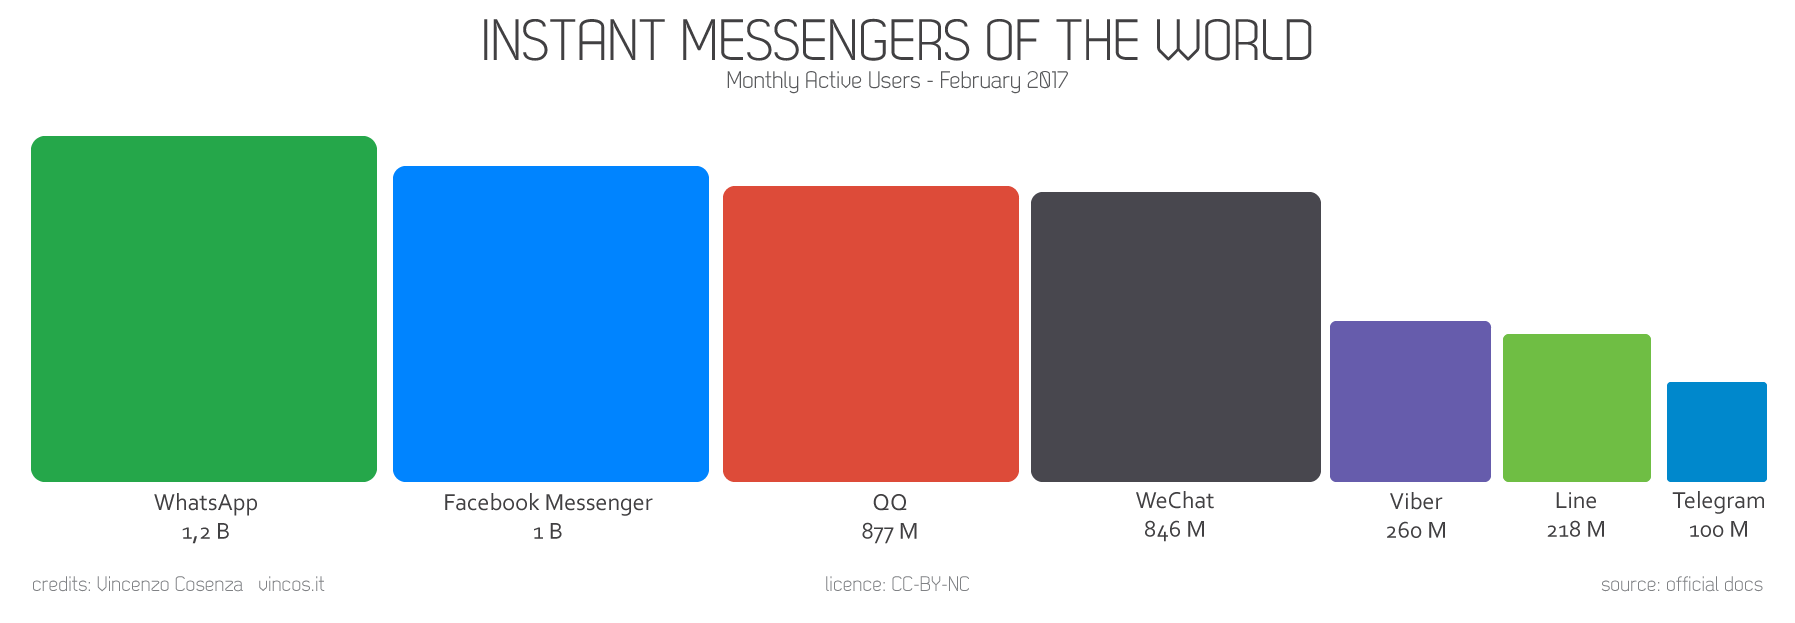 instant messaging monthly users